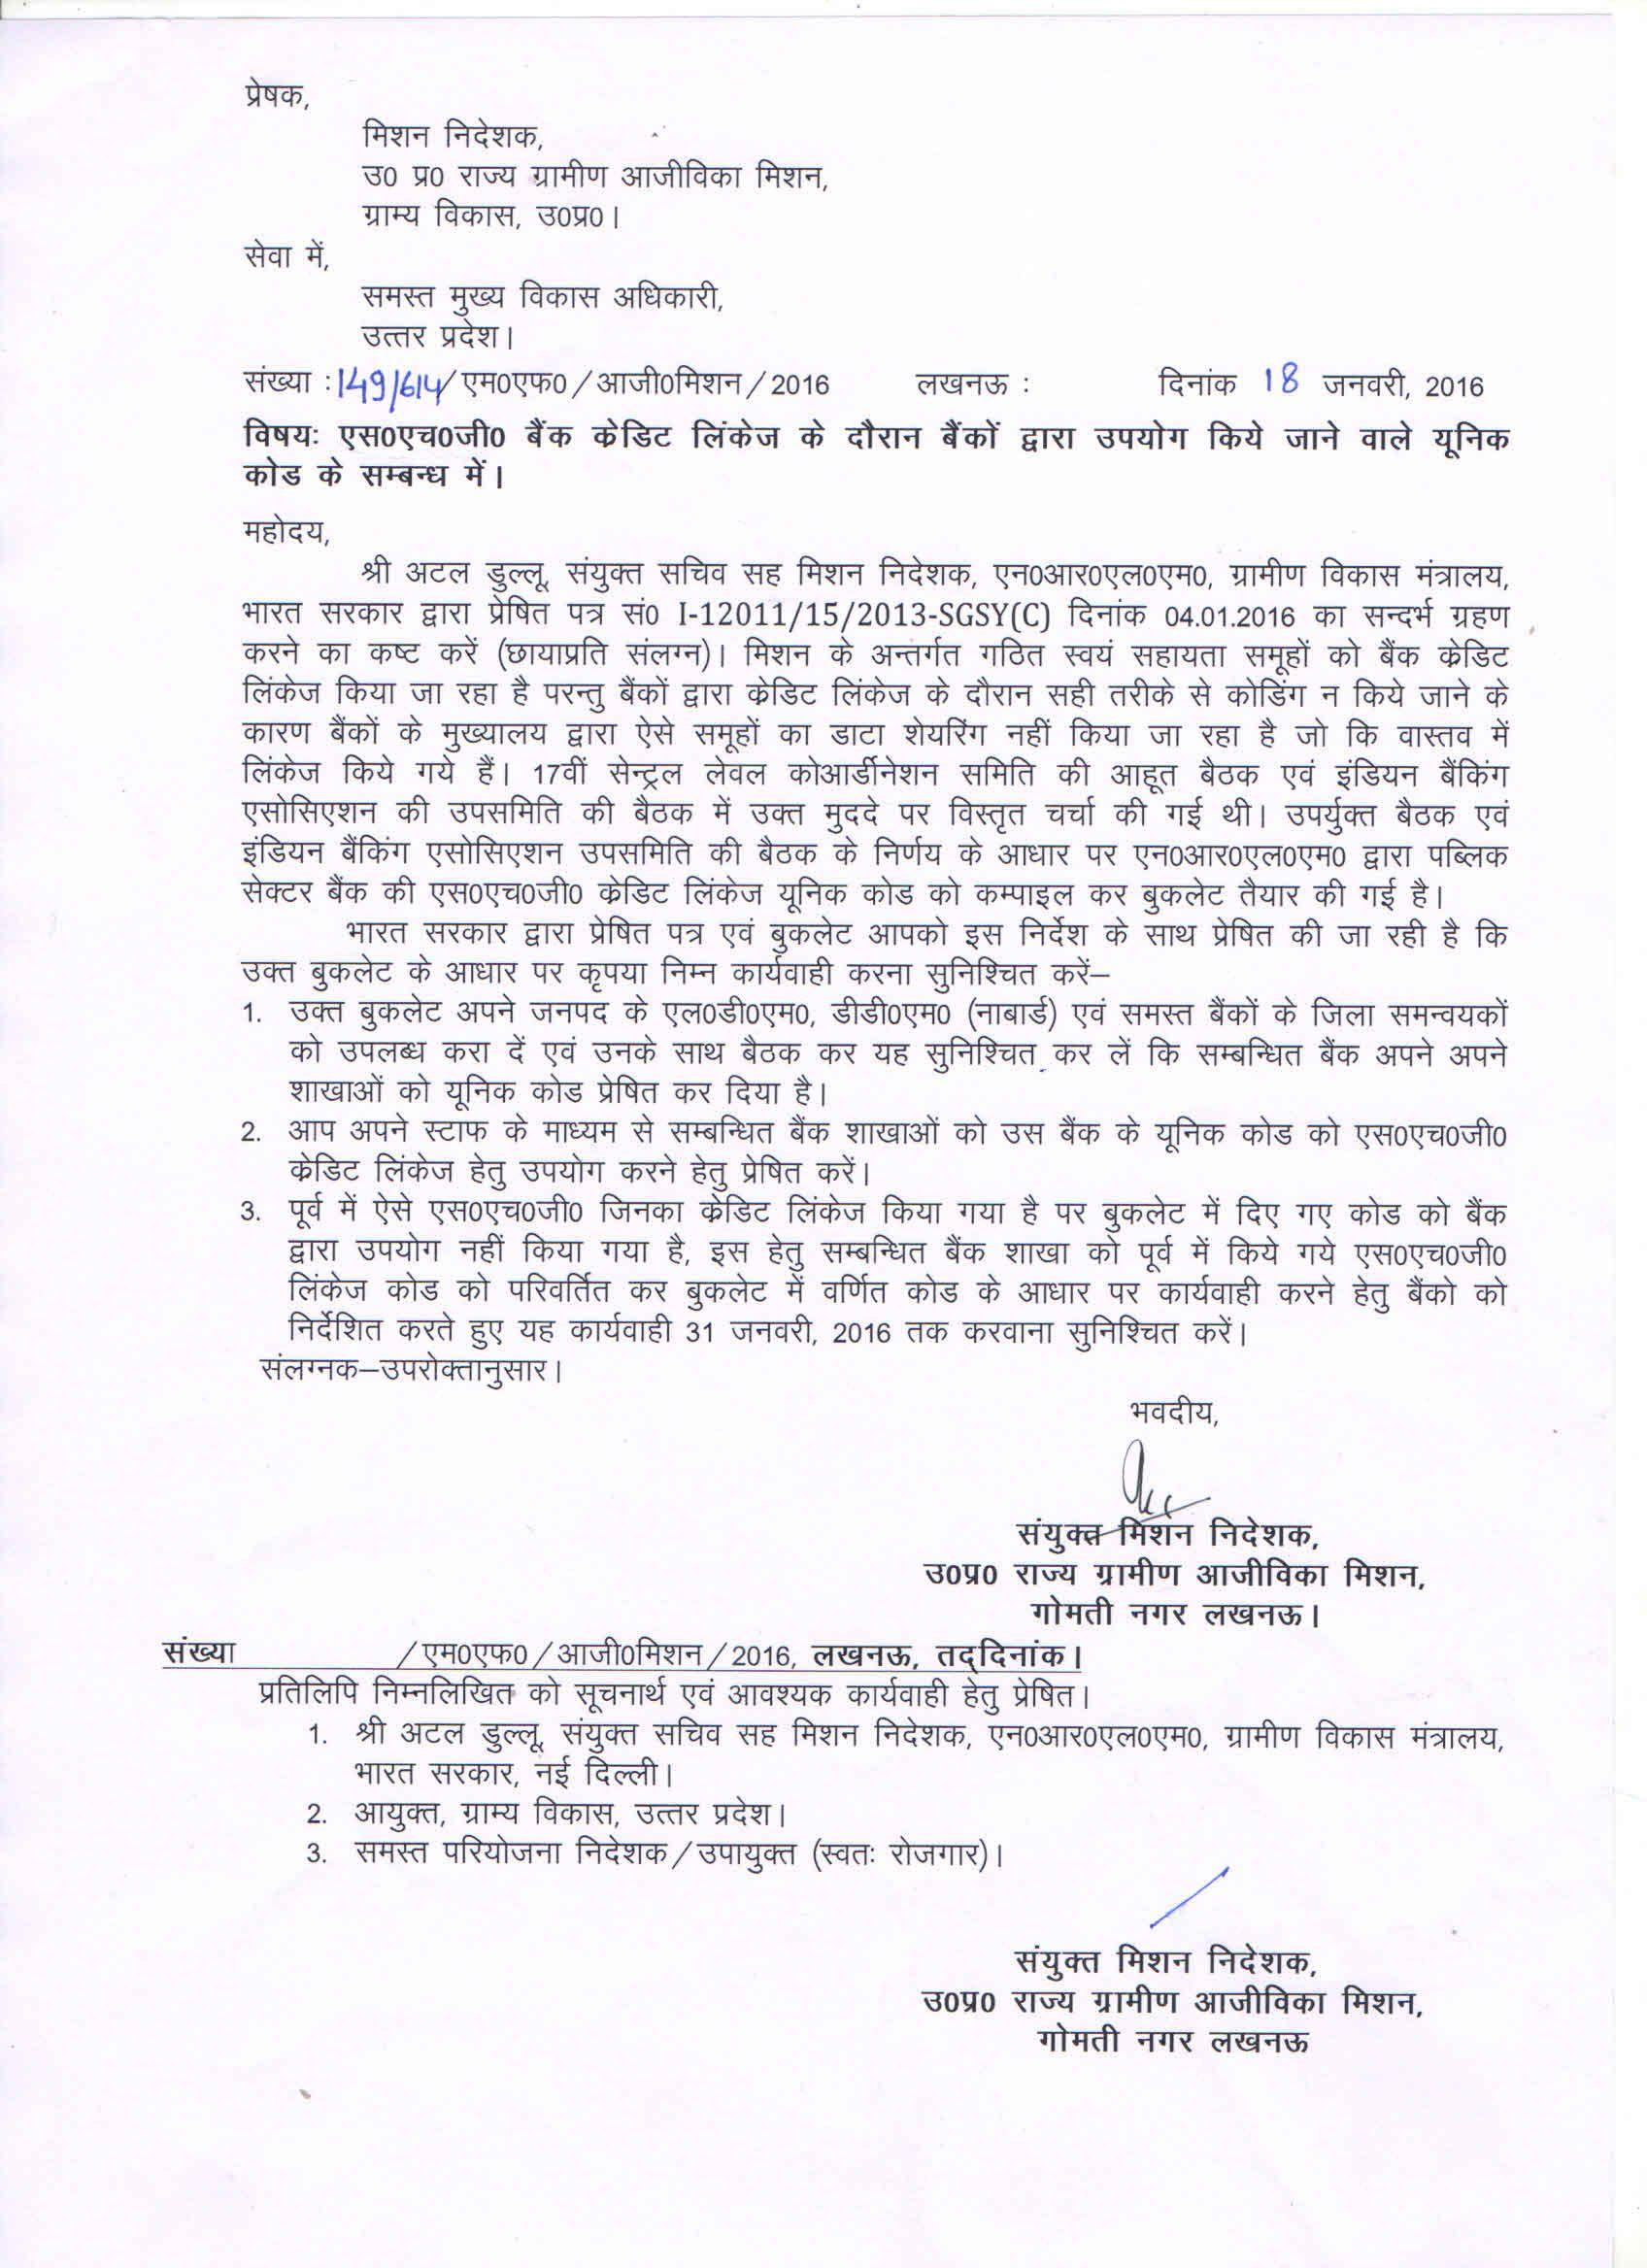 Letter for bank certificate issue iec overnite express request letter for bank certificate issue iec overnite express request indians getting birth listing parents xflitez Gallery